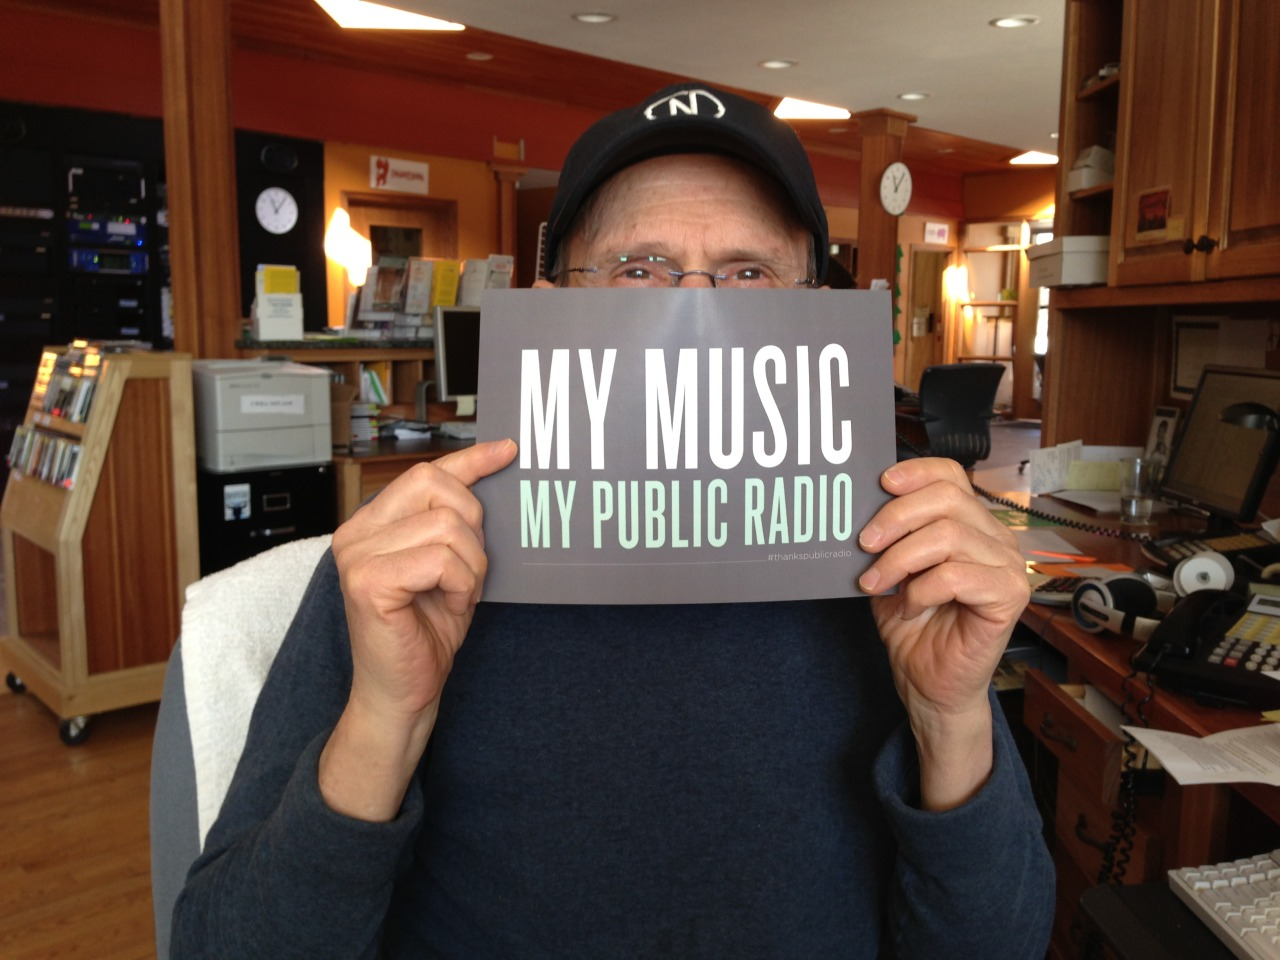 Morning Show host Scott Hall loves Public Radio Music!  publicradiomusicmonth.org